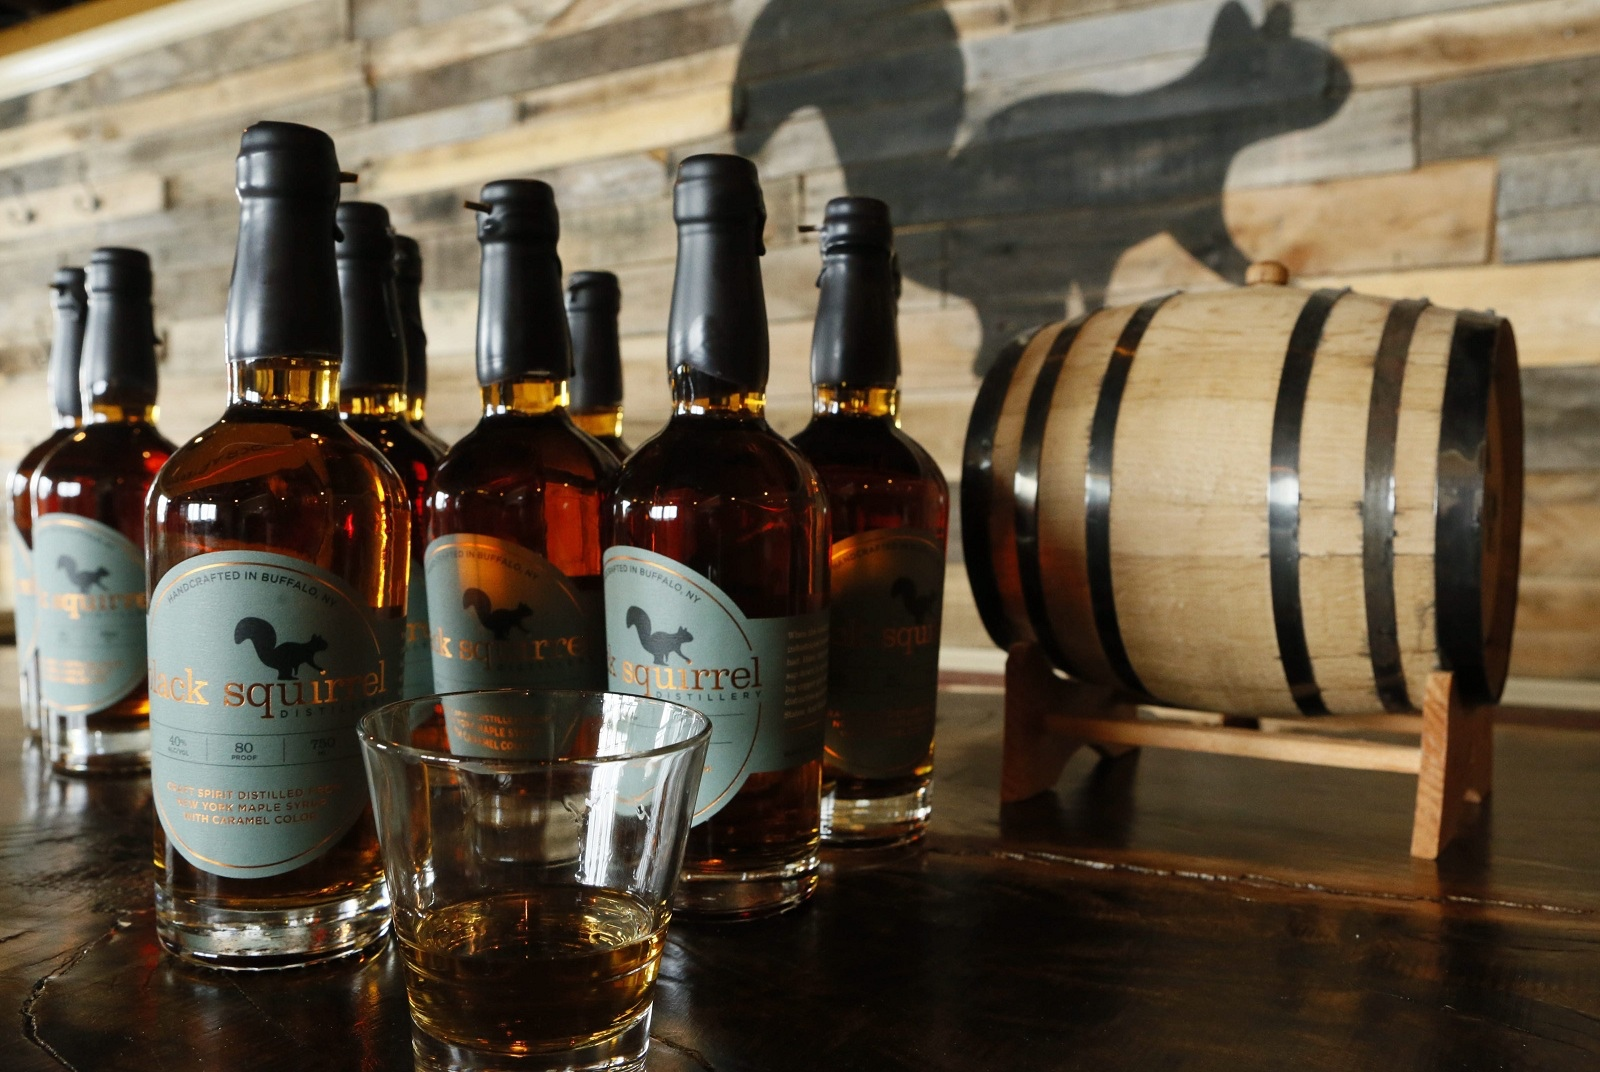 Black Squirrel, a craft spirit distilled from N.Y. state maple, made at a new distillery on Elmwood Avenue near Amherst Street, Feb. 19, 2015. (Derek Gee/Buffalo News)